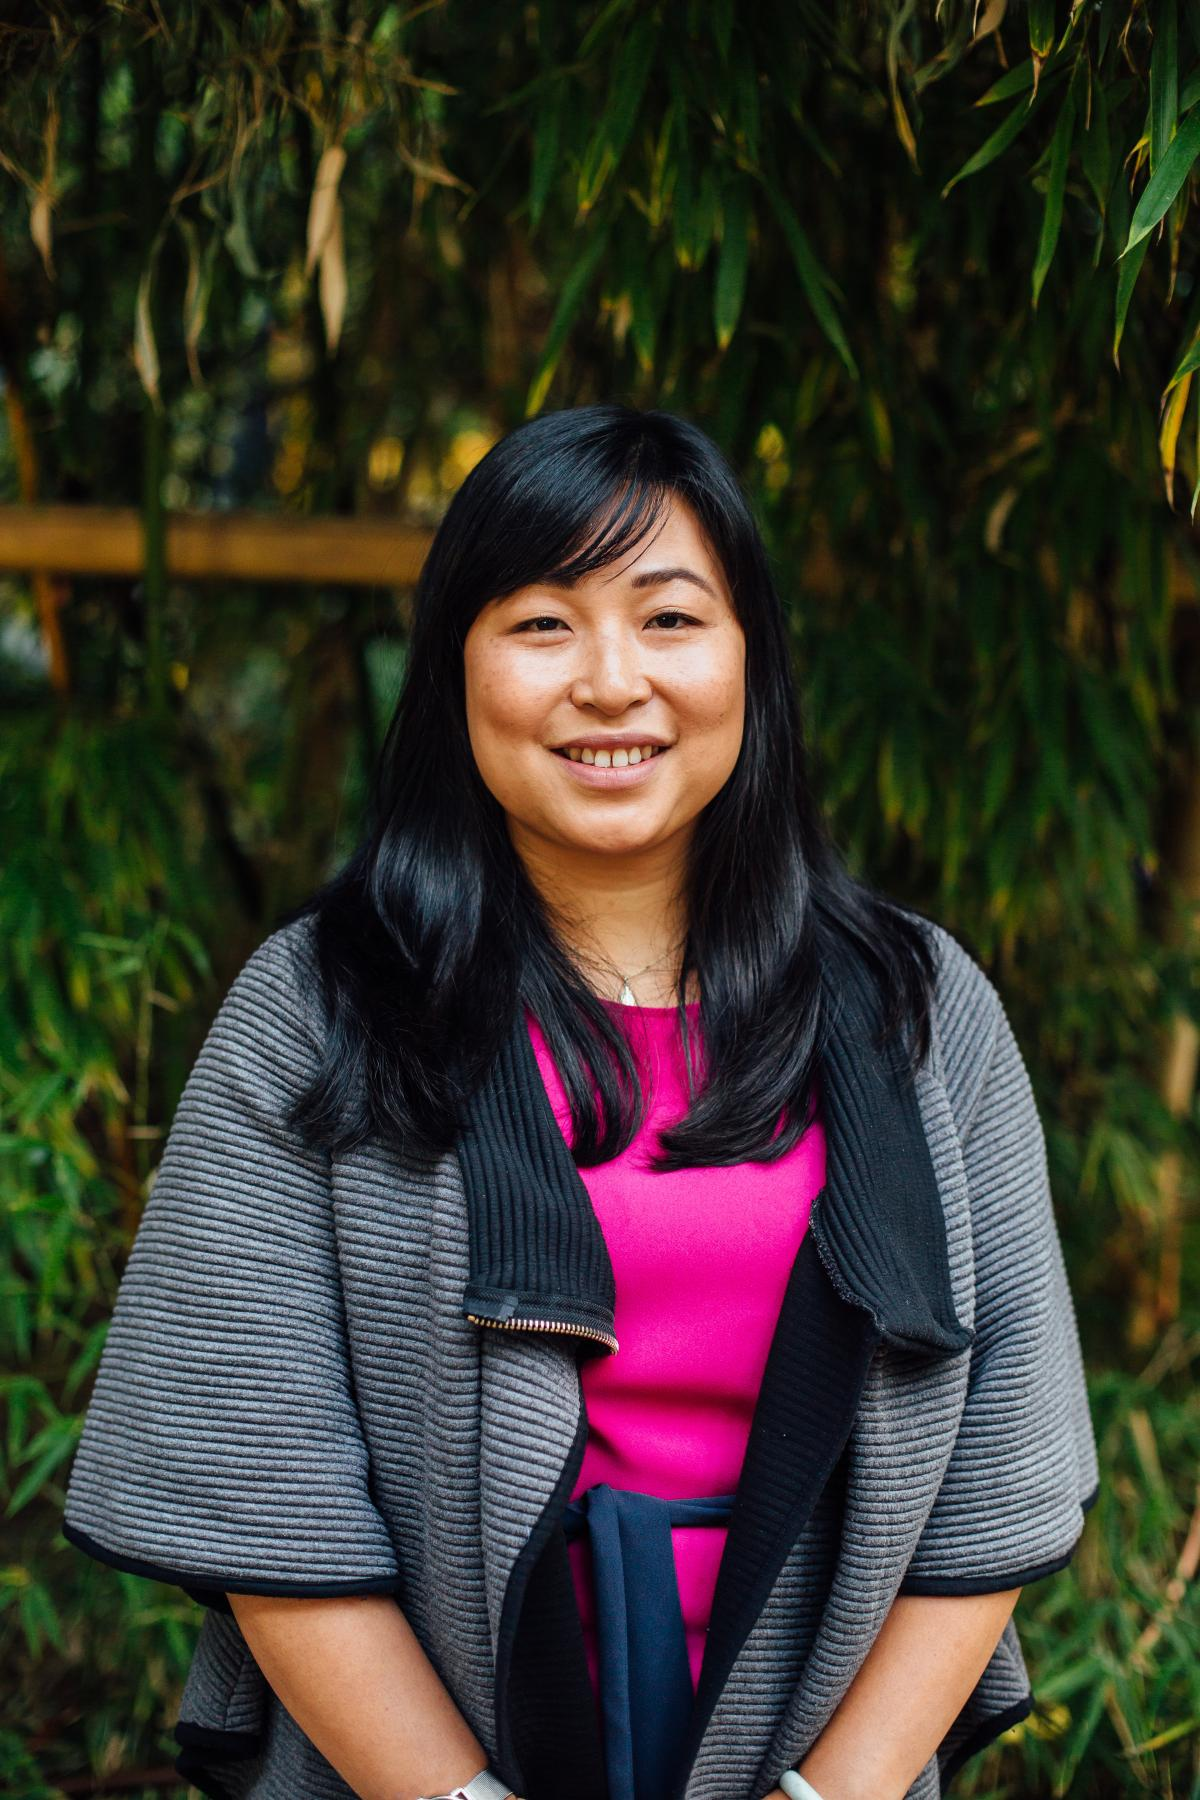 A portrait of Thanh Sinden